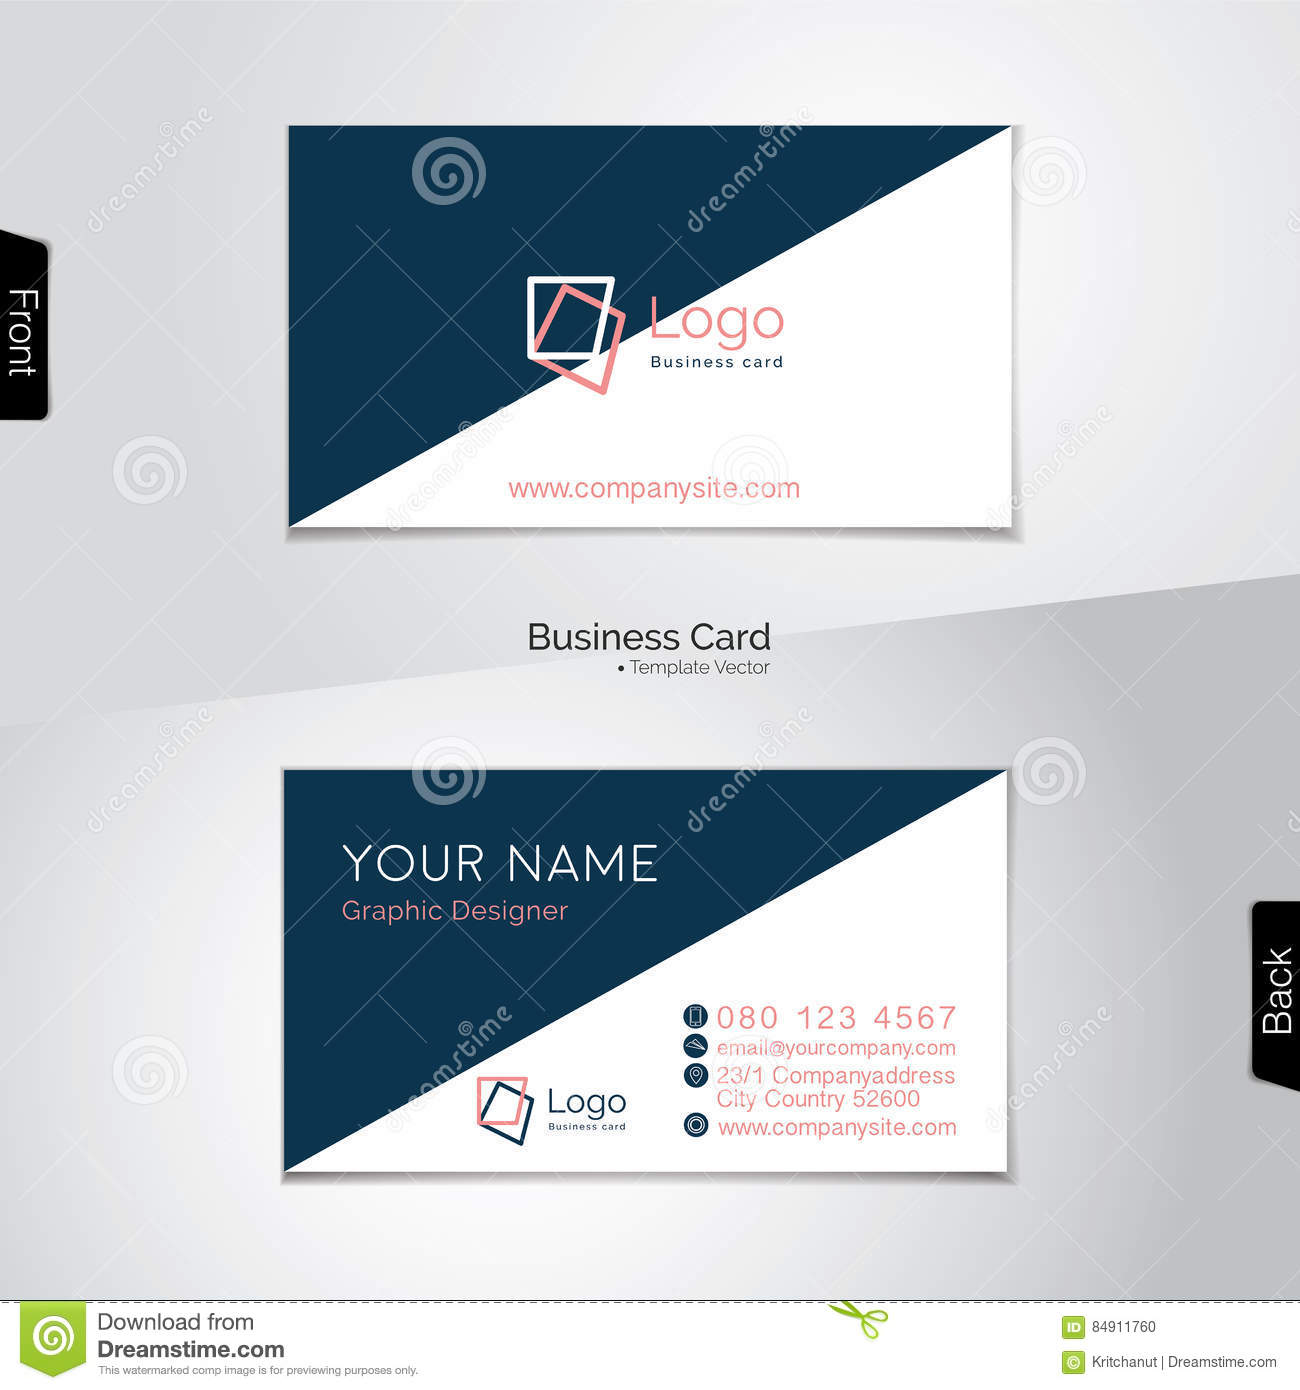 Simple white and dark blue business card vector template stock simple white and dark blue business card vector template stock vector illustration of white diagonal 84911760 reheart Image collections